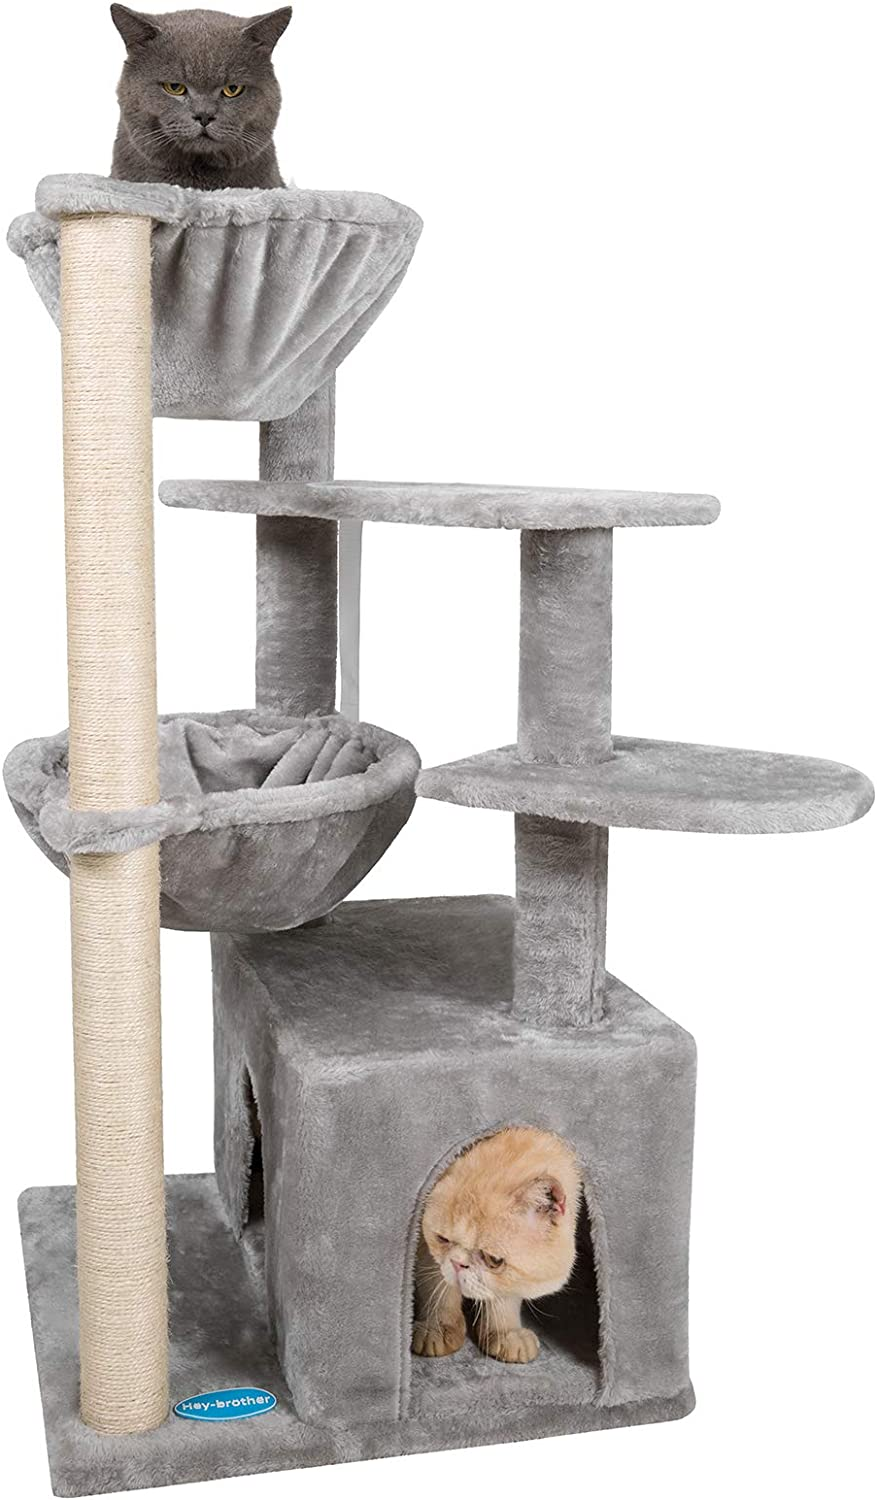 Hey-brother Multi-Level Cat Tree Condo Furniture with Sisal-Covered Scratching Posts for Kittens, Cats and Pets